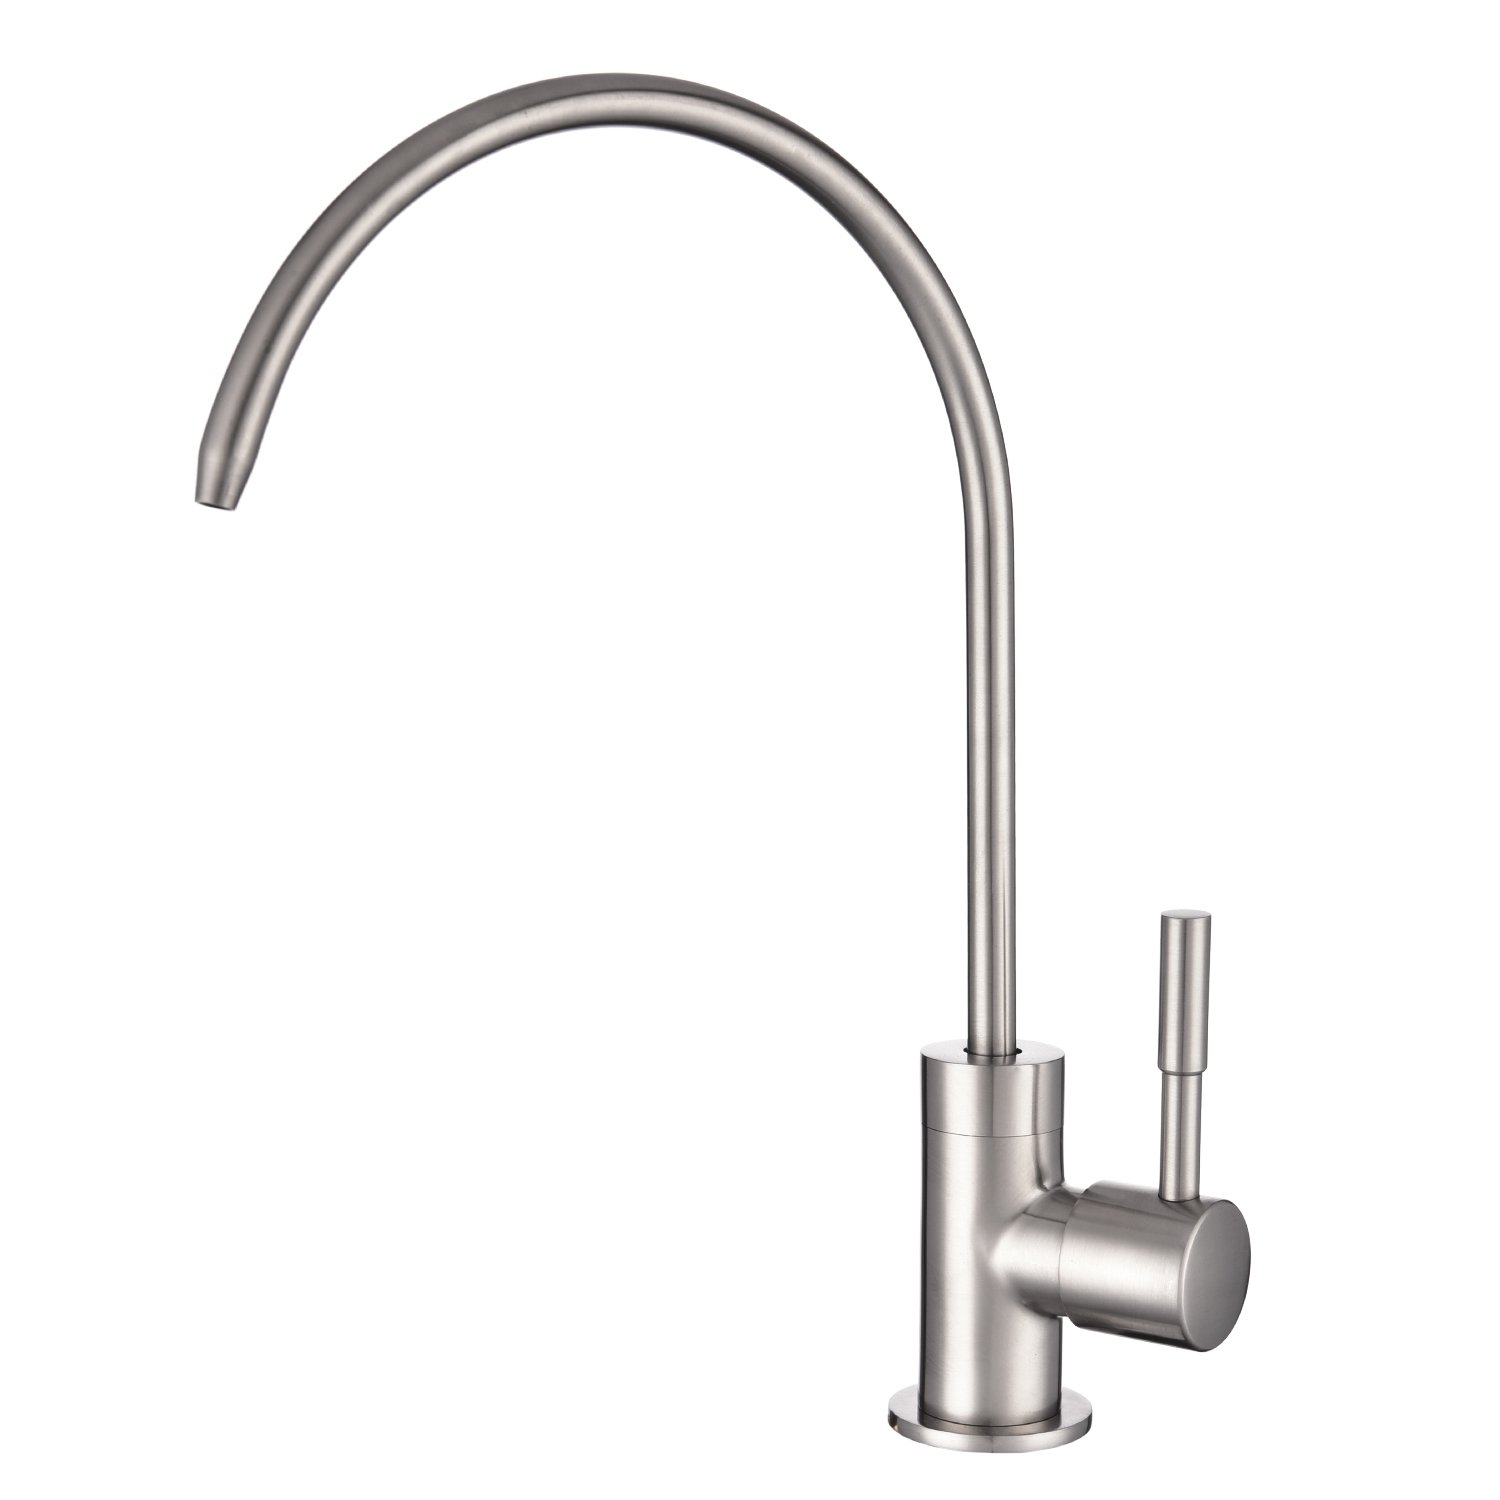 Drinking Water Filter Tap Stainless Steel Brushed Peppermint